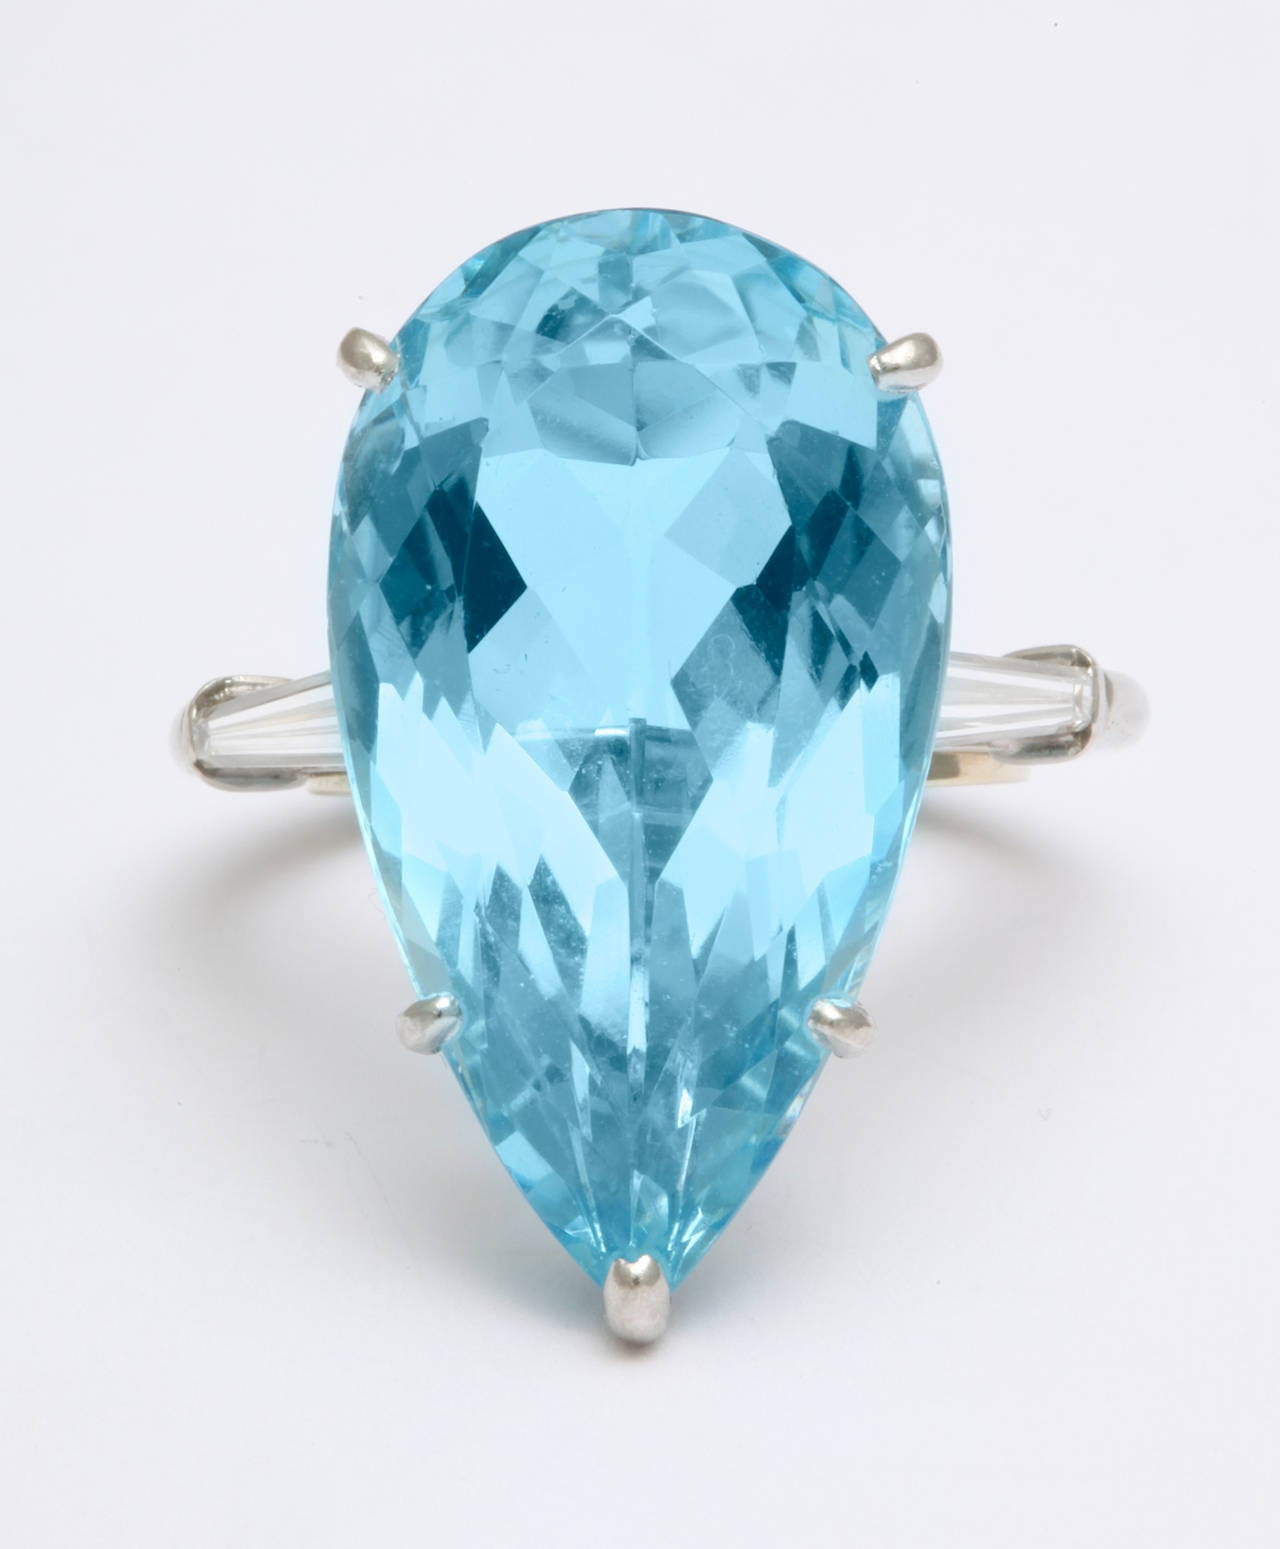 A glamorous 1950s platinum ring by Cartier holding a pear shape 16.88ct natural aquamarine, with long slender tapered baguette diamonds on each side.  Signed Cartier. Aqua measures 1 inch. Currently fits a size 6 finger. With original box, and an